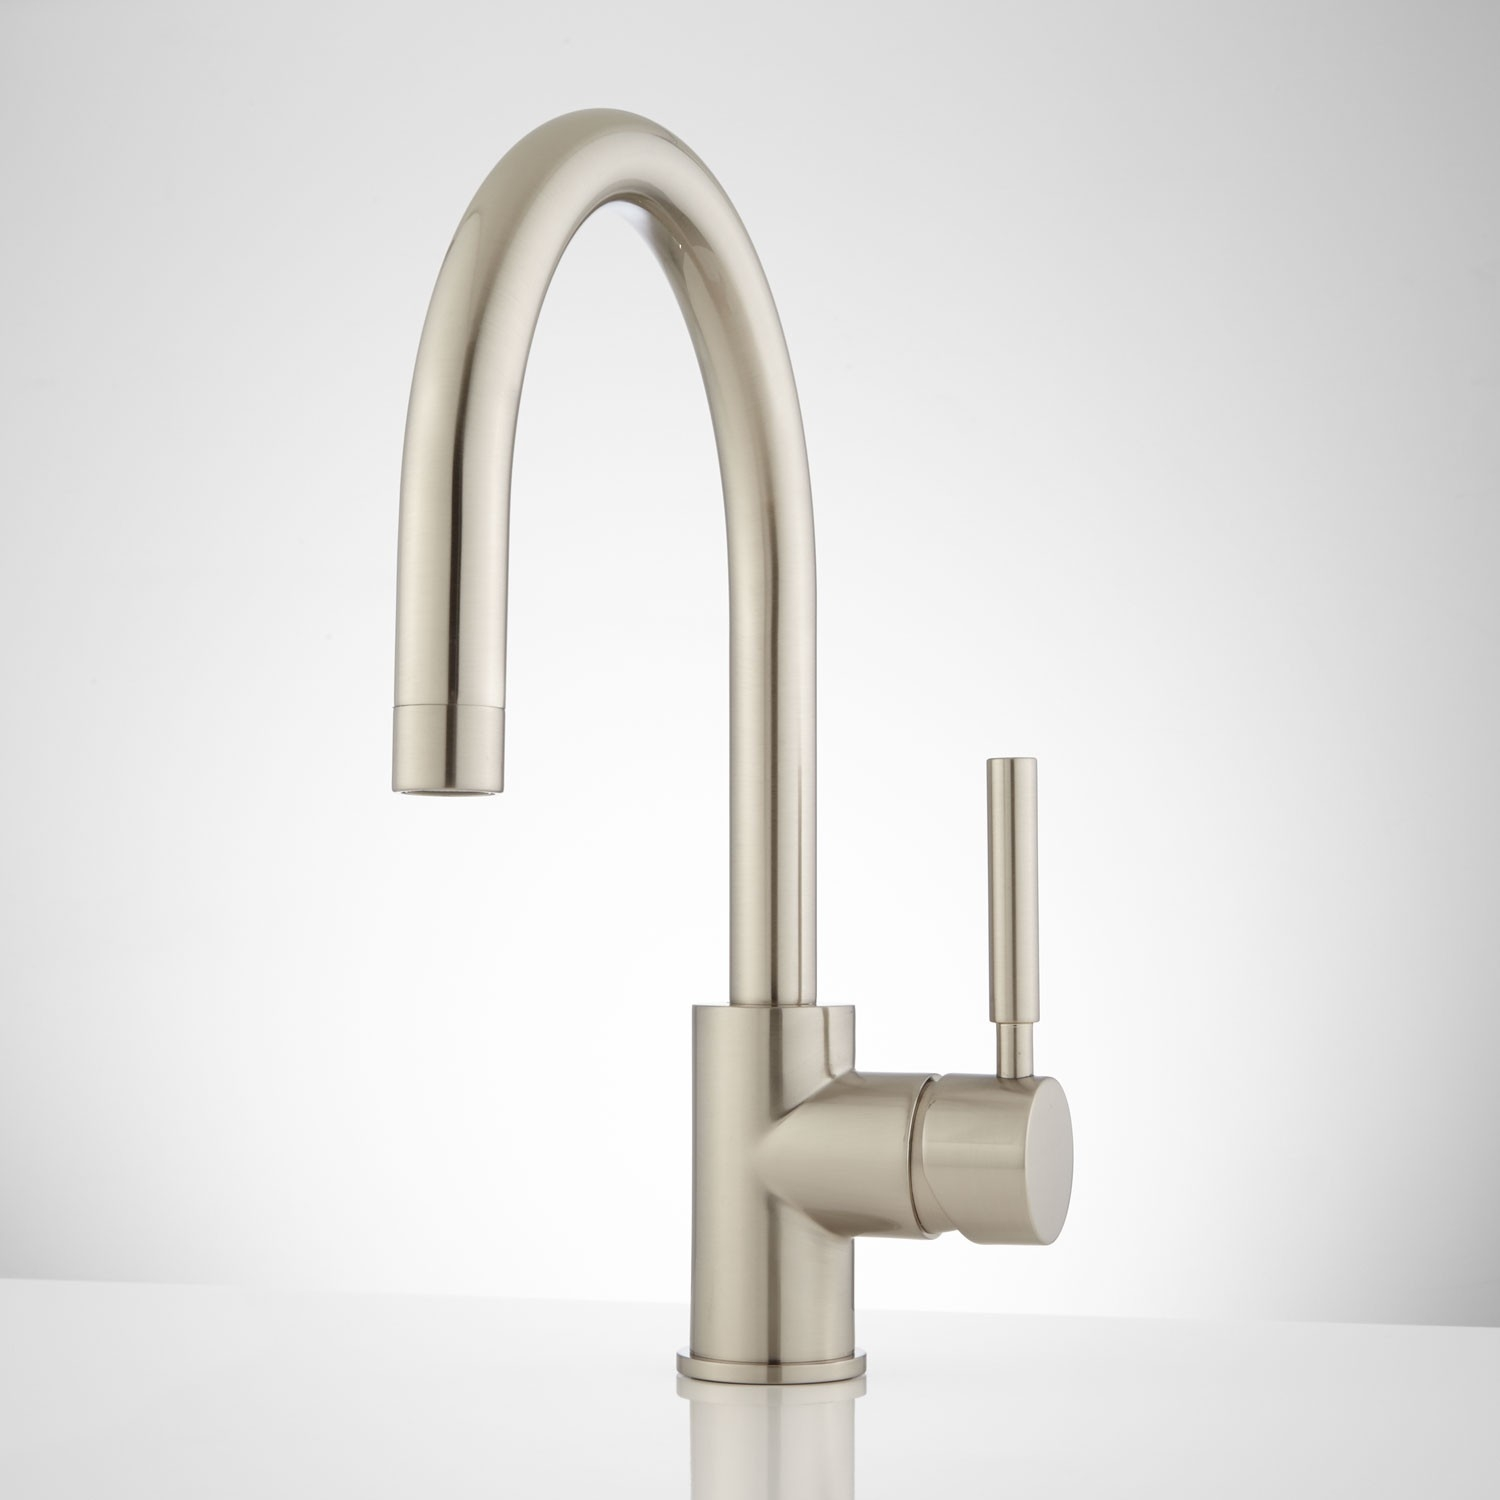 Ideas, casimir single hole bathroom faucet with pop up drain single regarding proportions 1500 x 1500  .